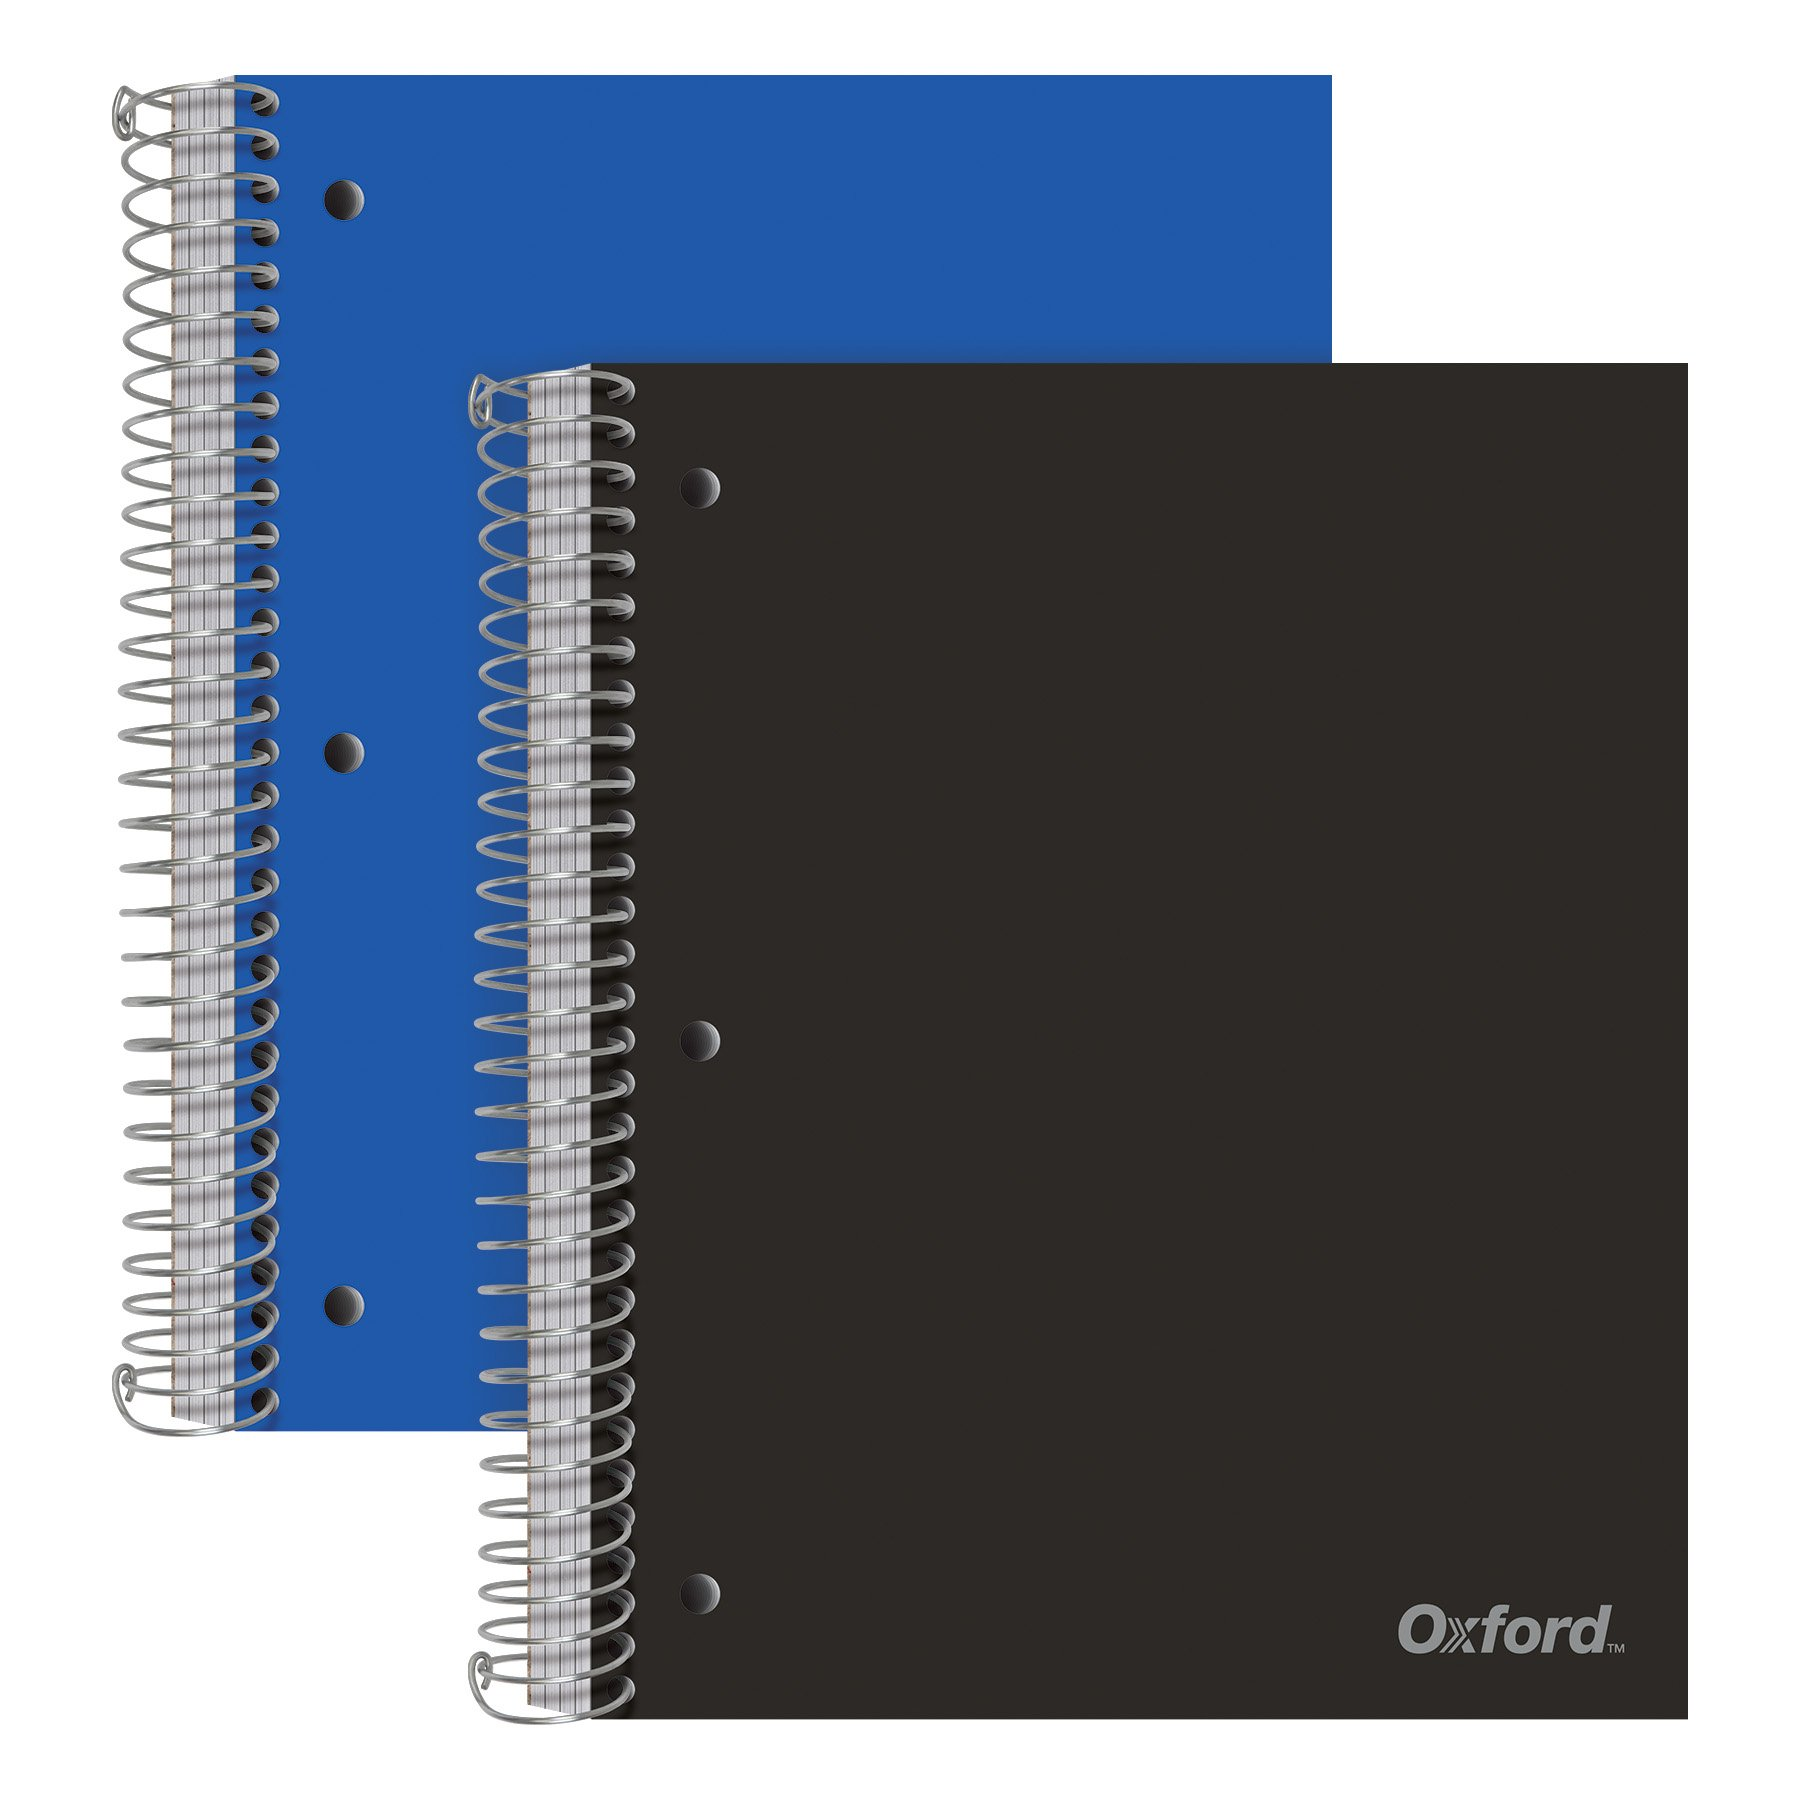 Oxford 5-Subject Poly Notebooks, 8-1/2'' x 10-1/2'', Wide Rule, Assorted Color Covers, 200 Sheets, 5 Poly Divider Pockets, 2 Pack (10387) by Oxford